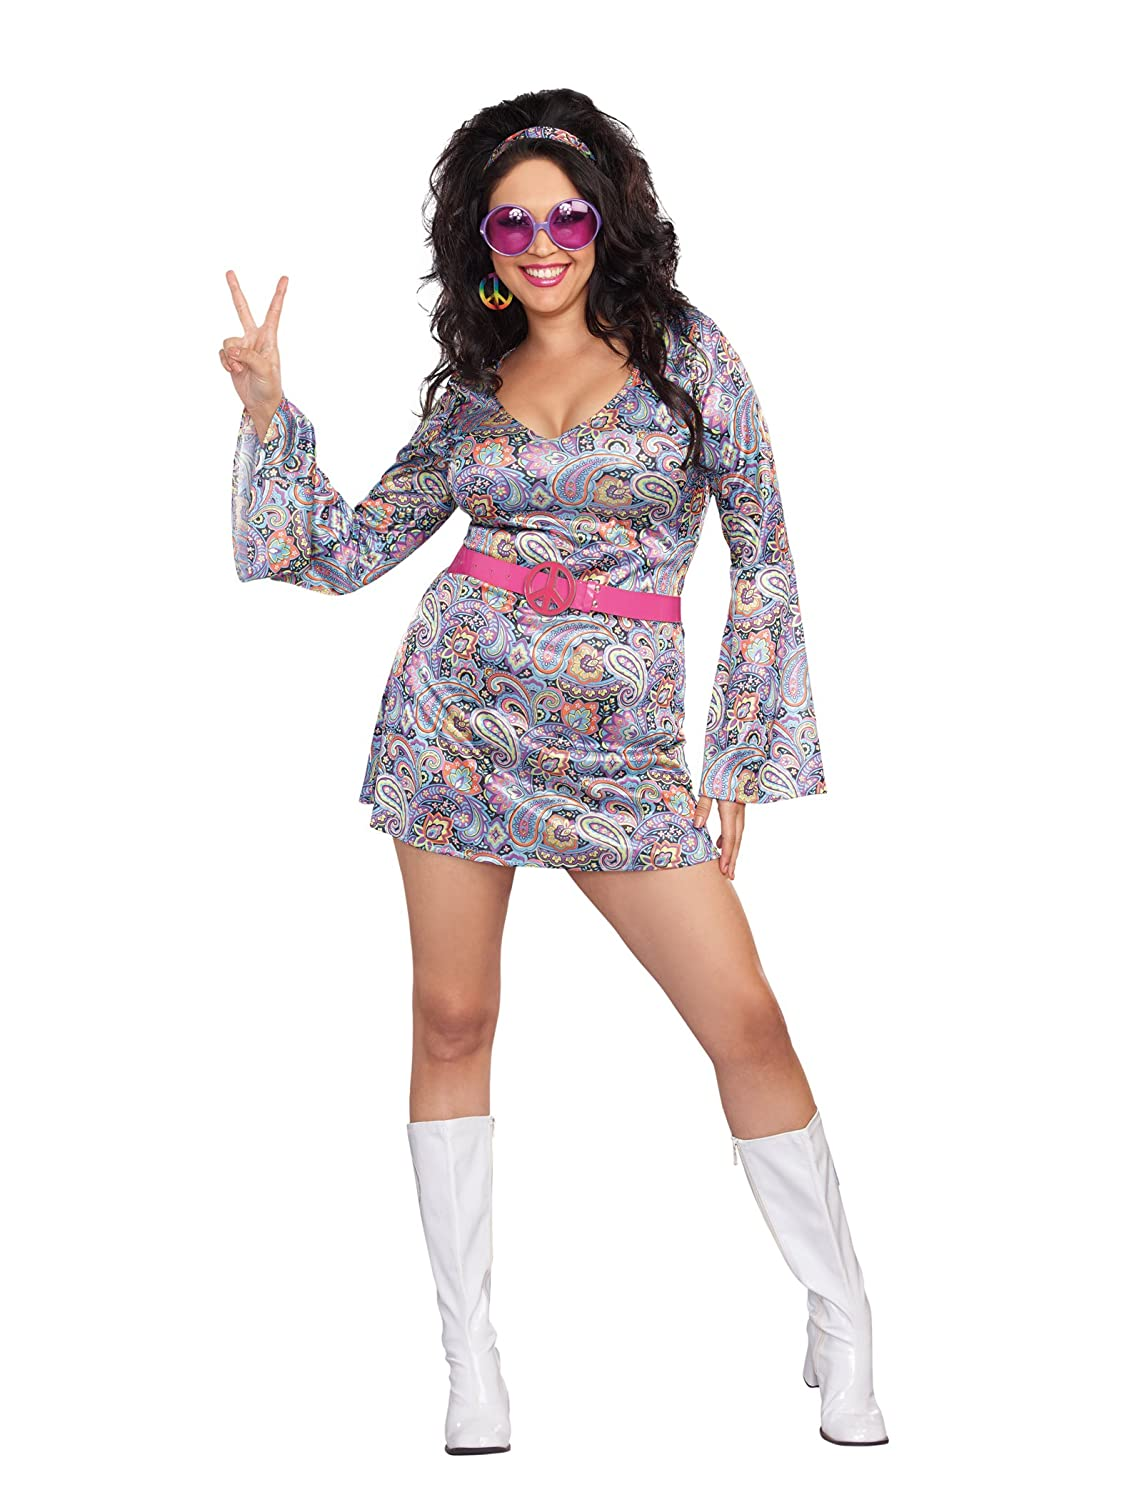 60s 70s Plus Size Dresses, Clothing, Costumes Dreamgirl Womens Plus-Size Love-Fest Costume $21.94 AT vintagedancer.com